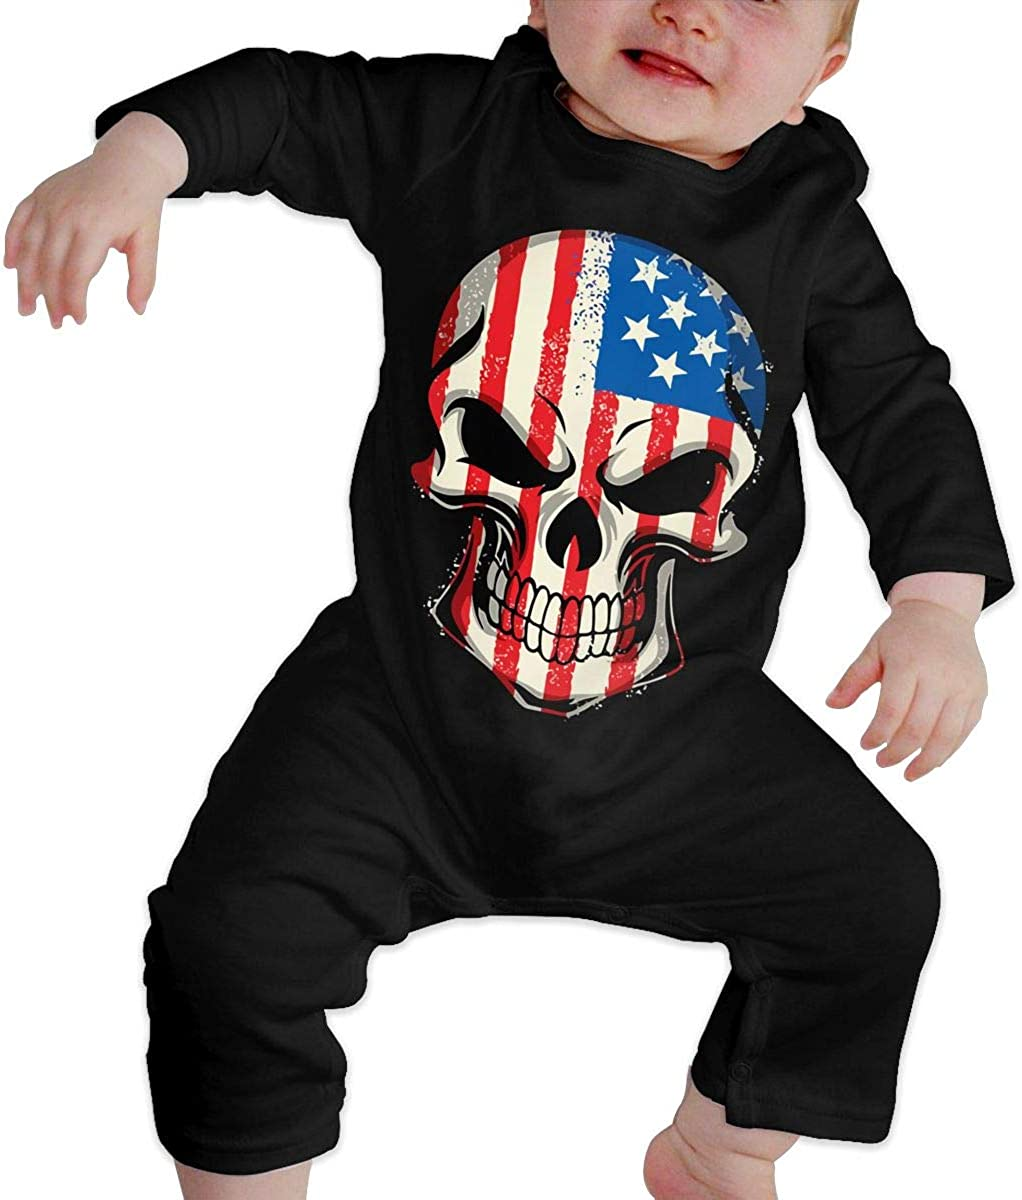 YELTY6F Skull American Flag Printed Newborn Baby One-Piece Suit Long Sleeve Romper Black